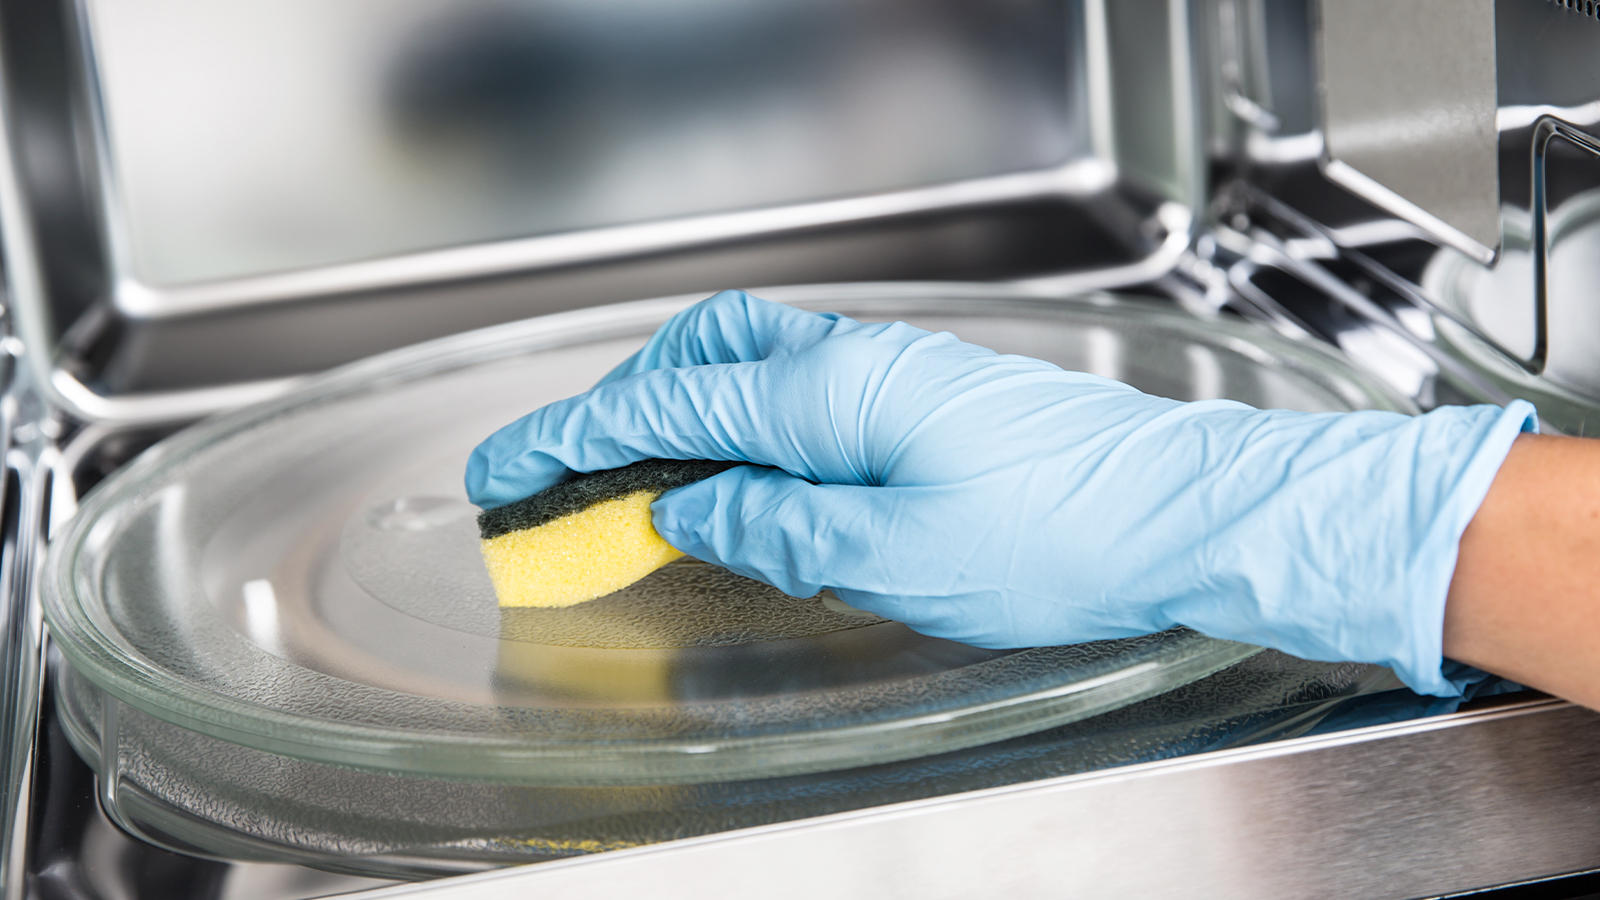 Placing a sponge in a microwave to disinfect it.